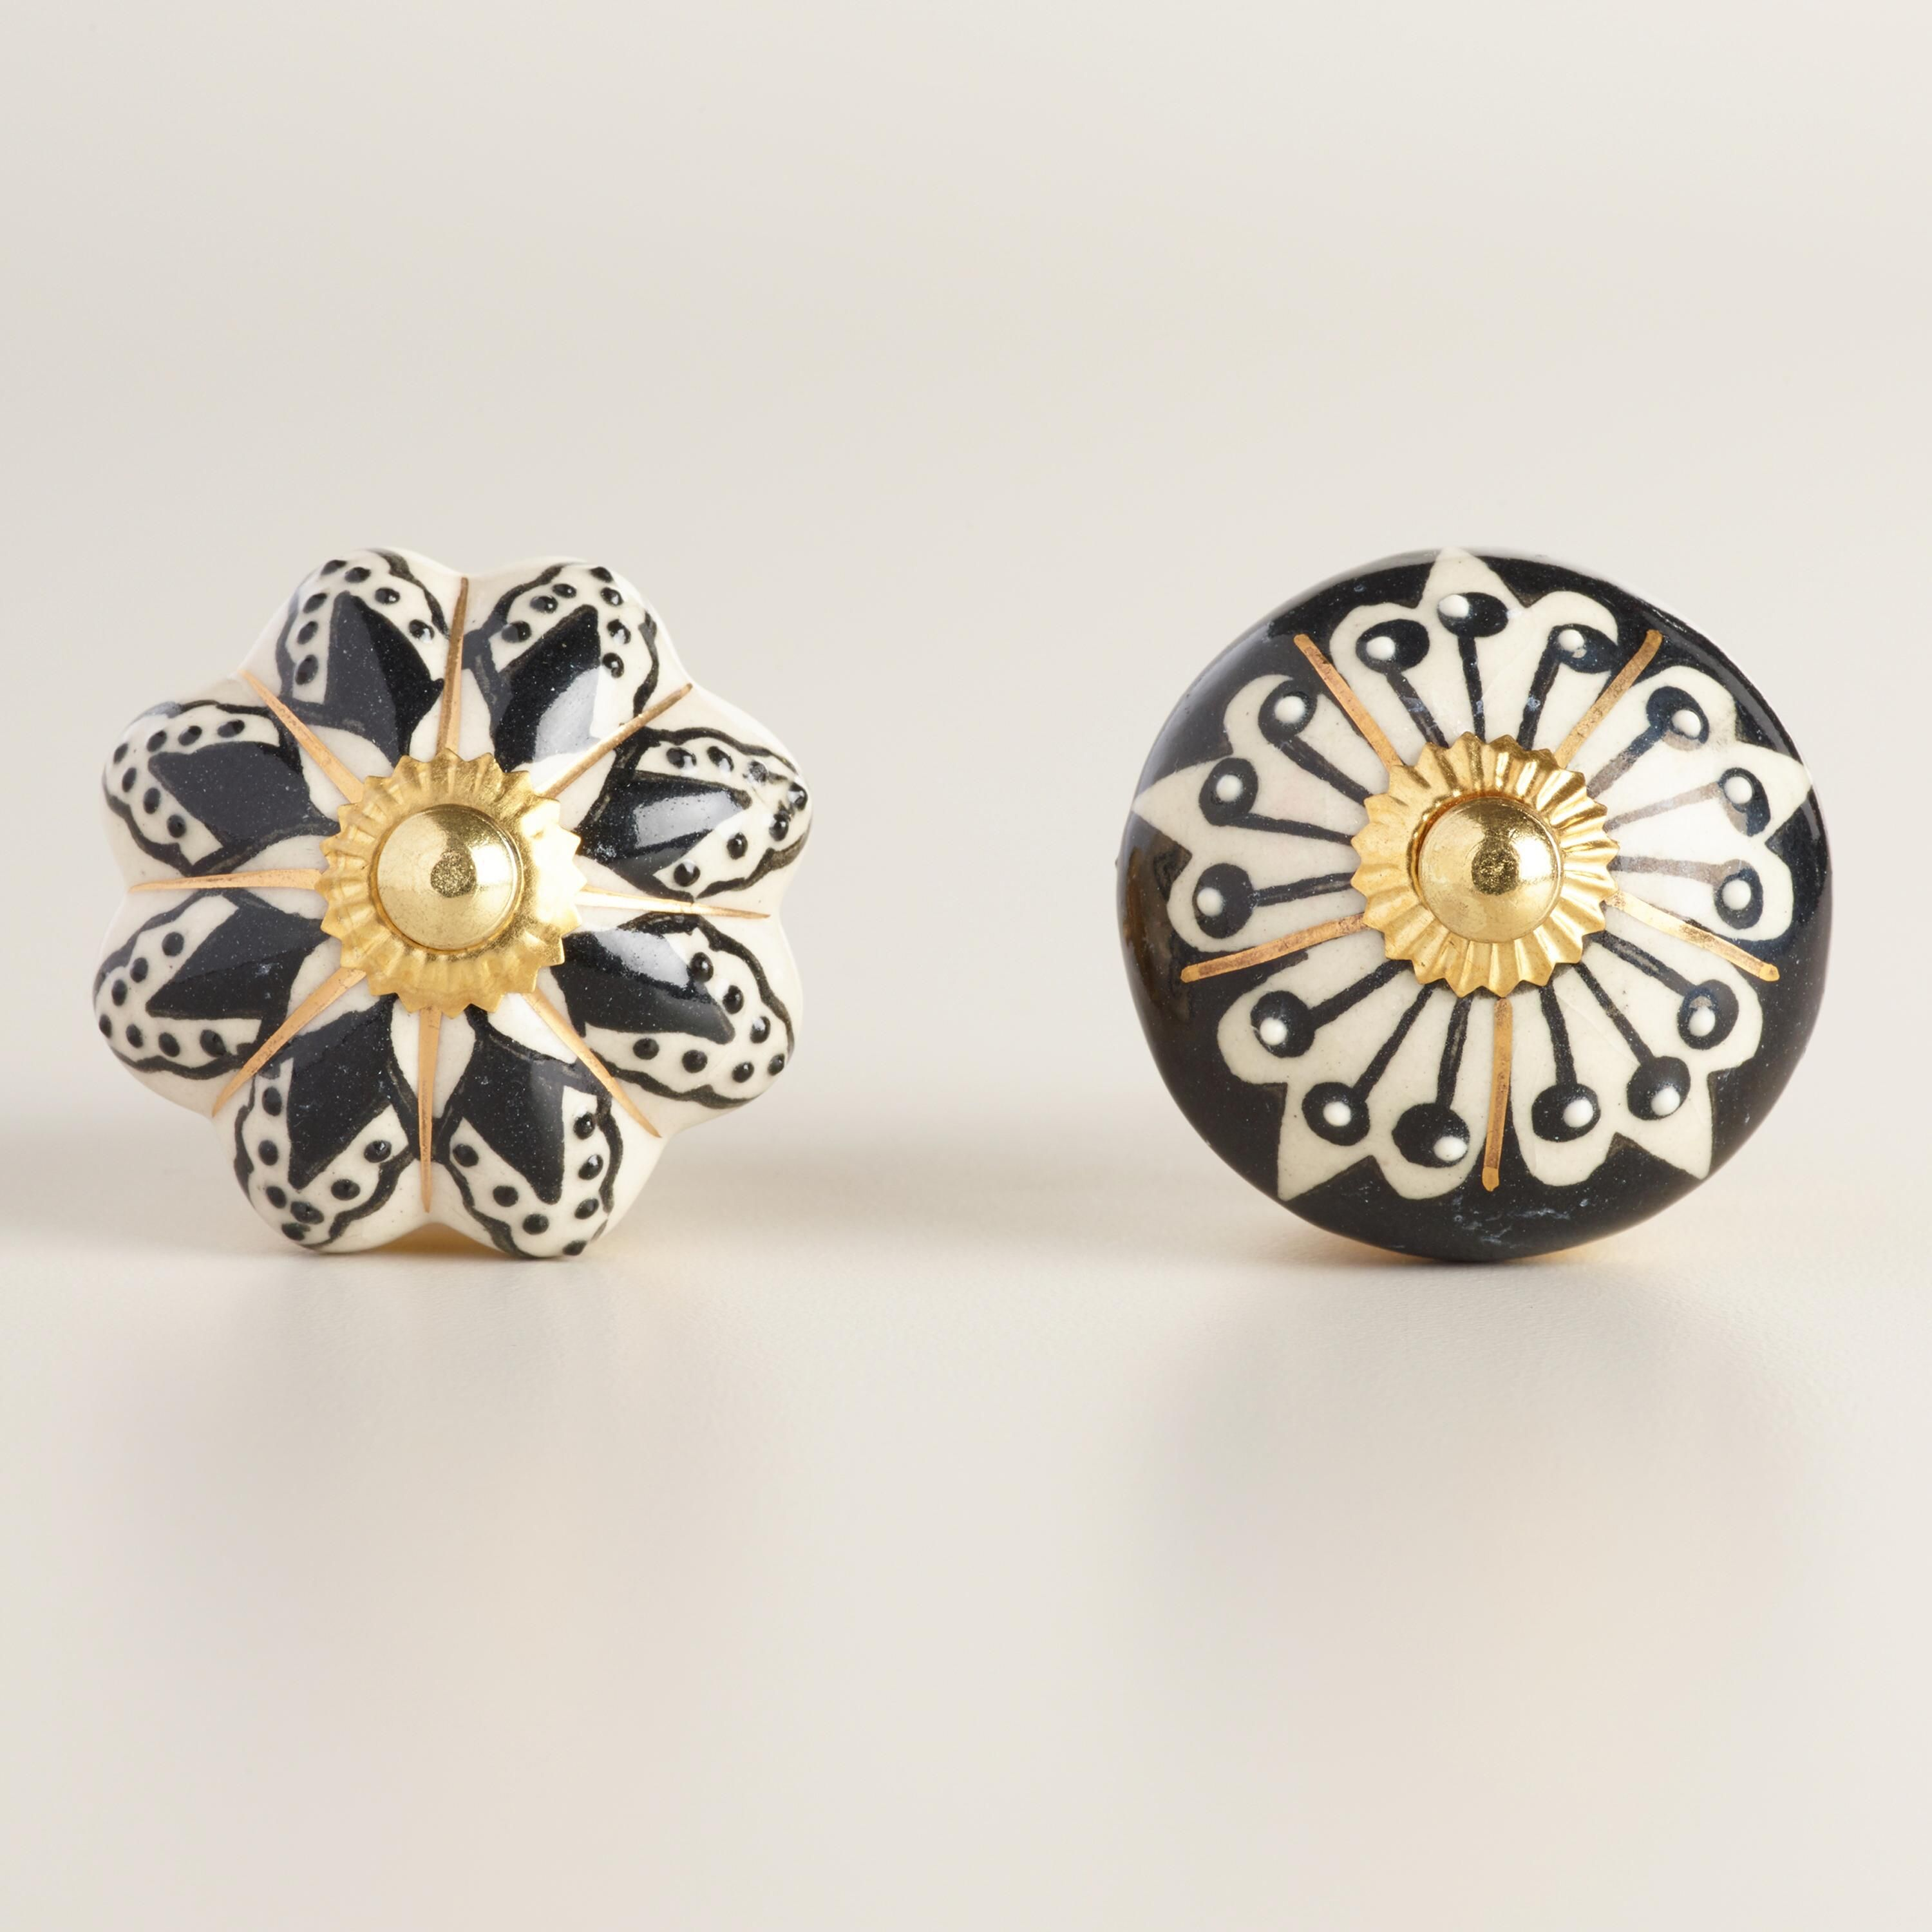 Set of two Brass and White Porcelain Drawer Pulls